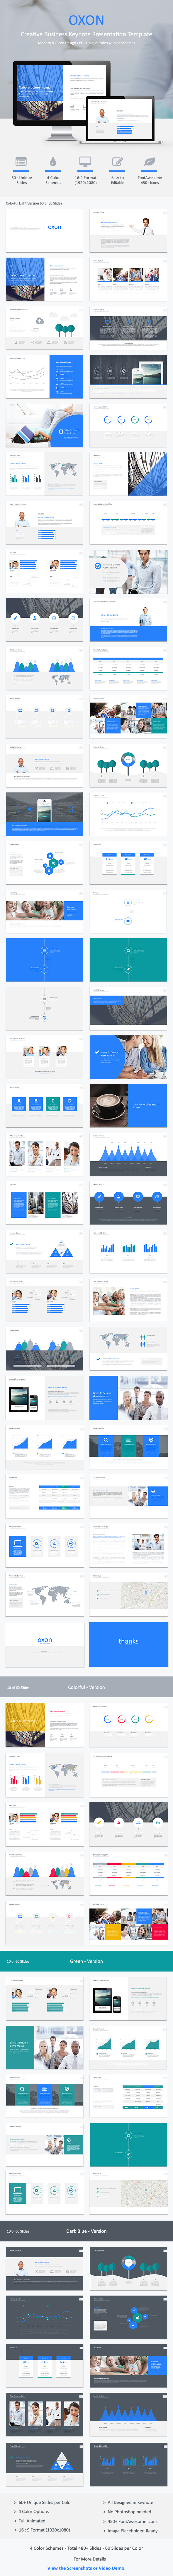 GraphicRiver Oxon Keynote Presentation Template 9634660